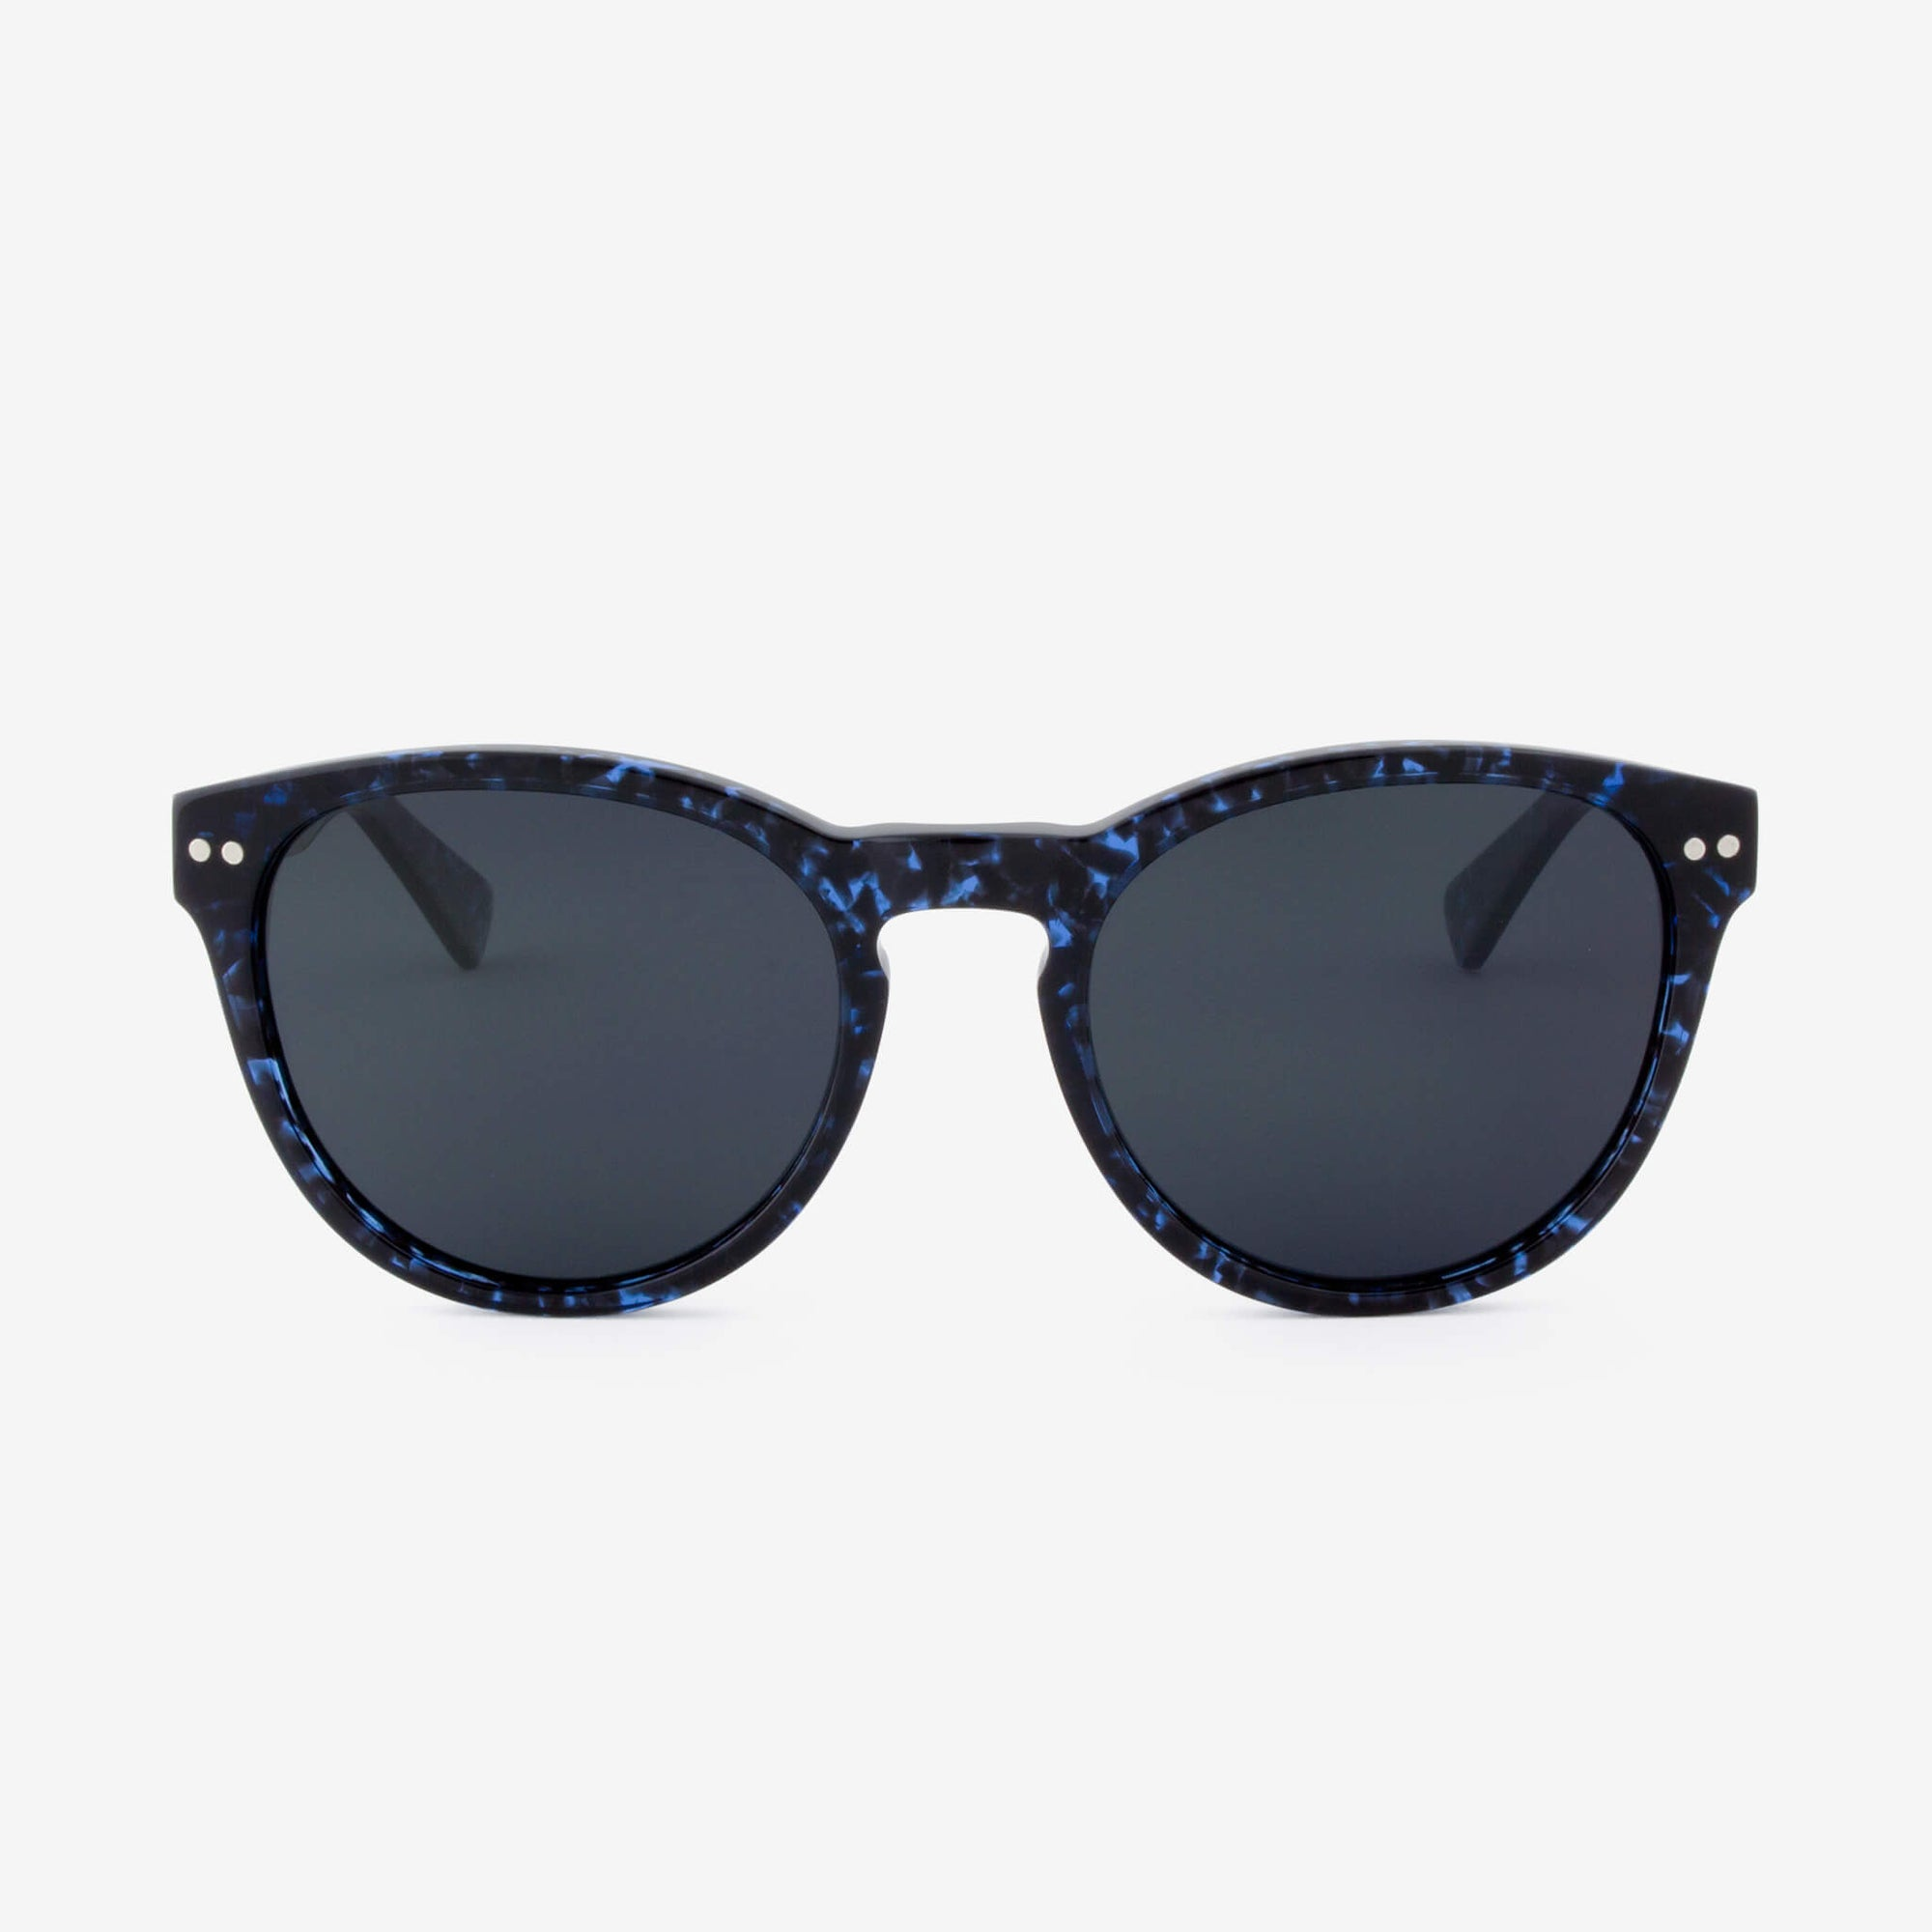 Davie Blue Abyss tortoise shell acetate & wood sunglasses